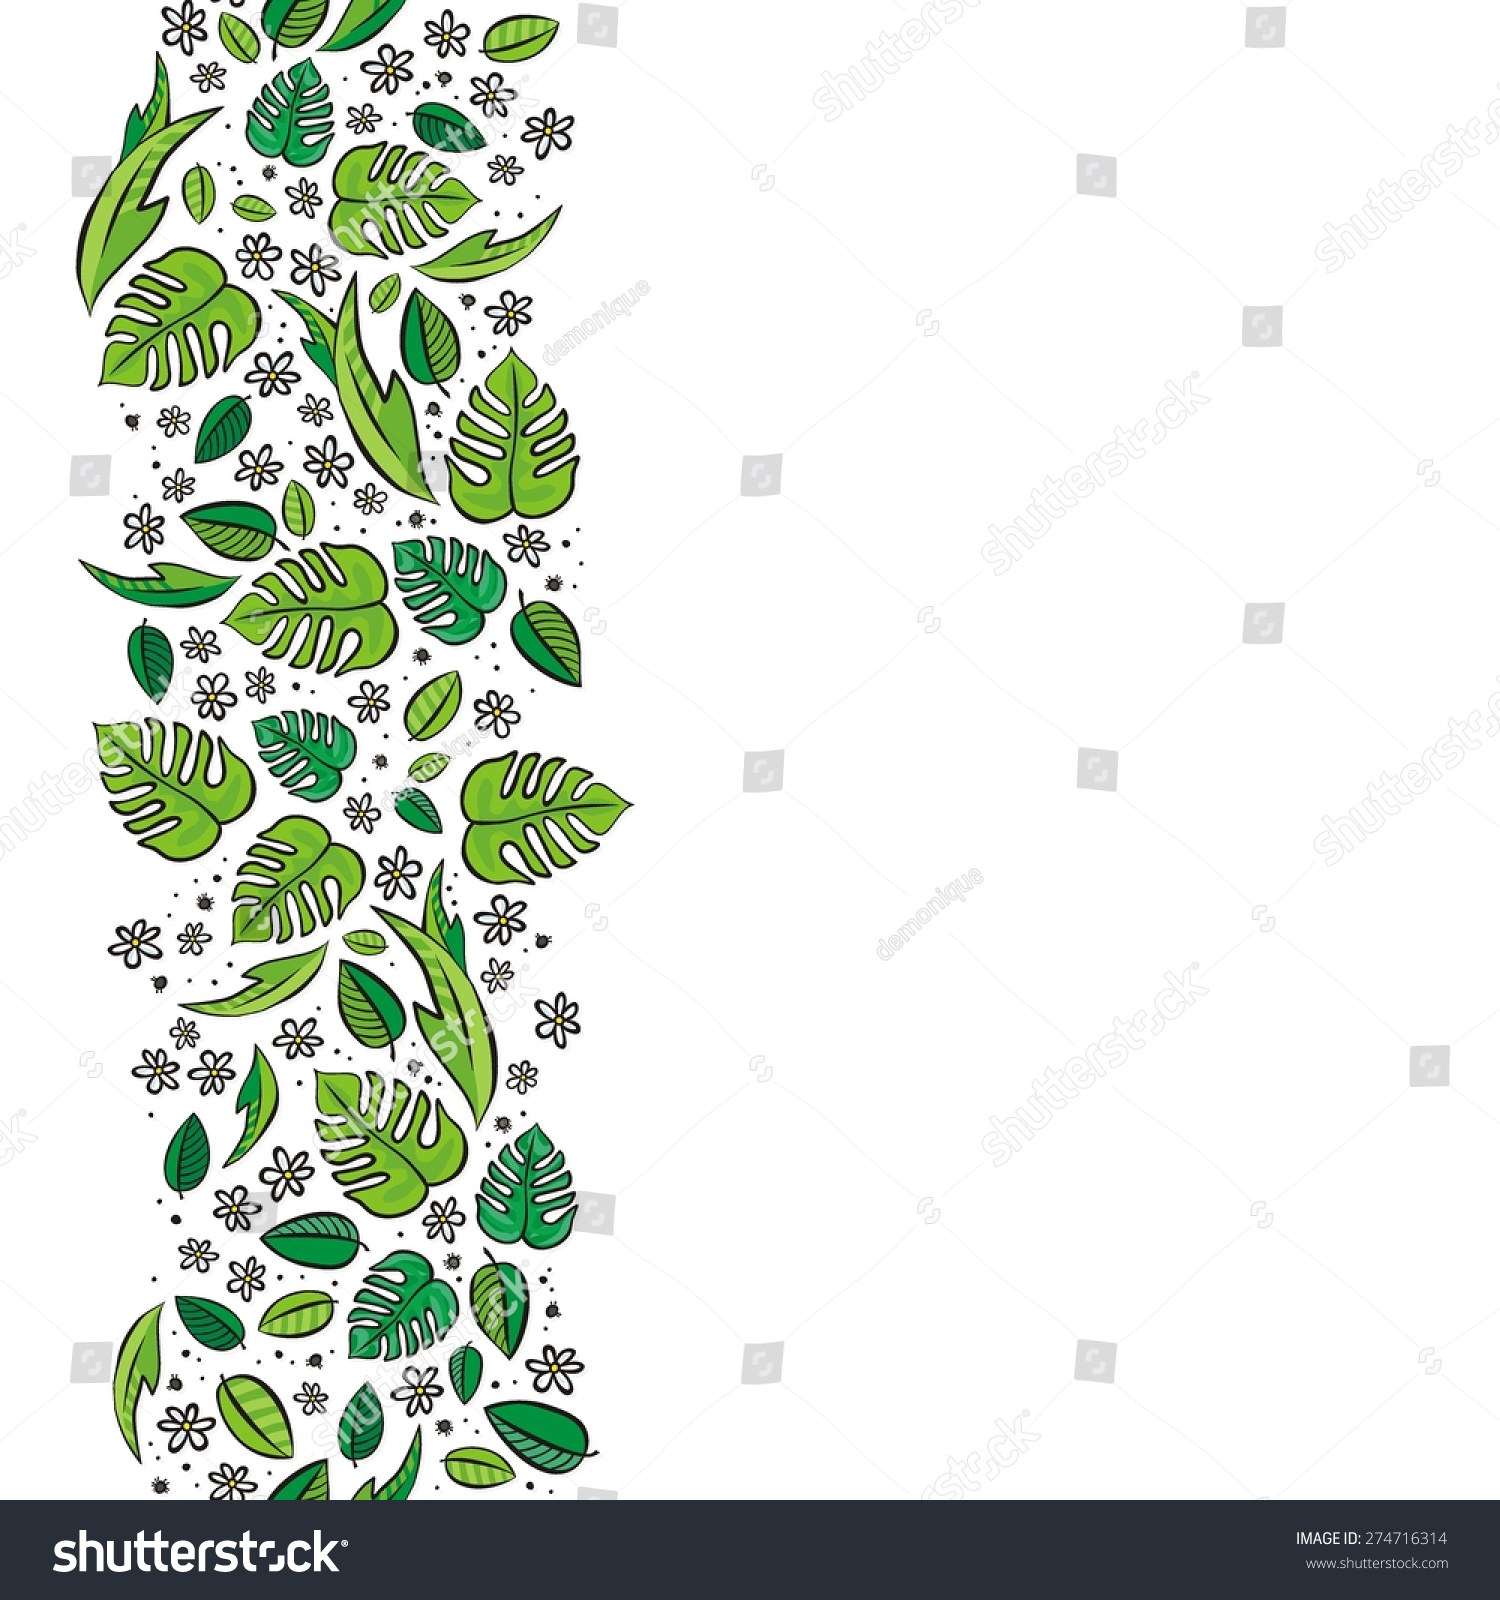 Secret Garden Colorful Spring Summer Floral Seasonal Messy Seamless Vertical Border On White Background